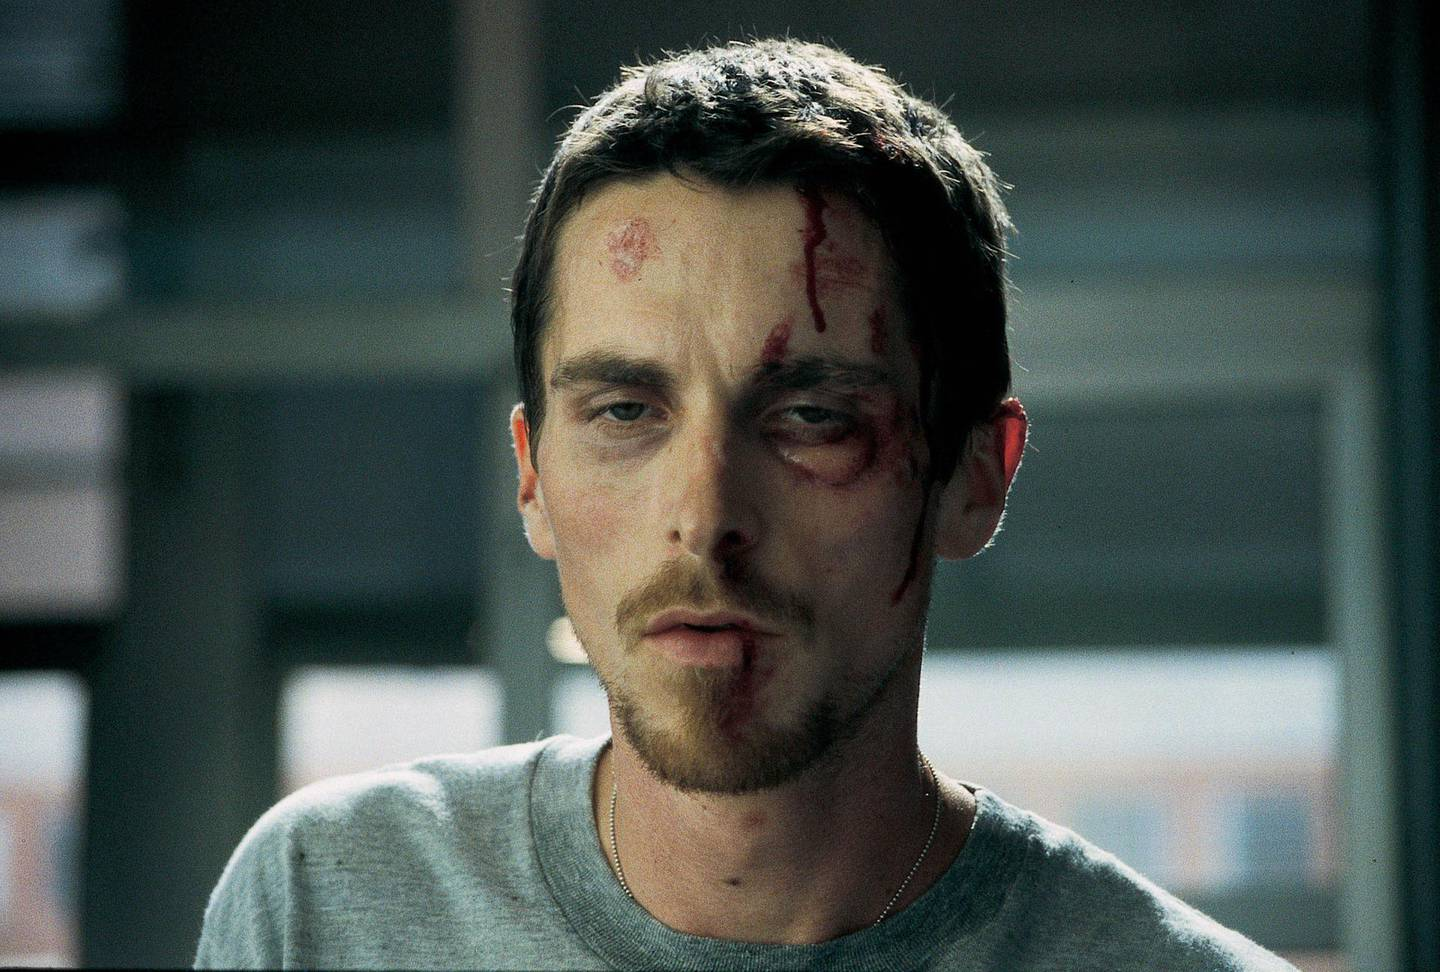 Christian Bale in The Machinist. Courtesy Filmax Group